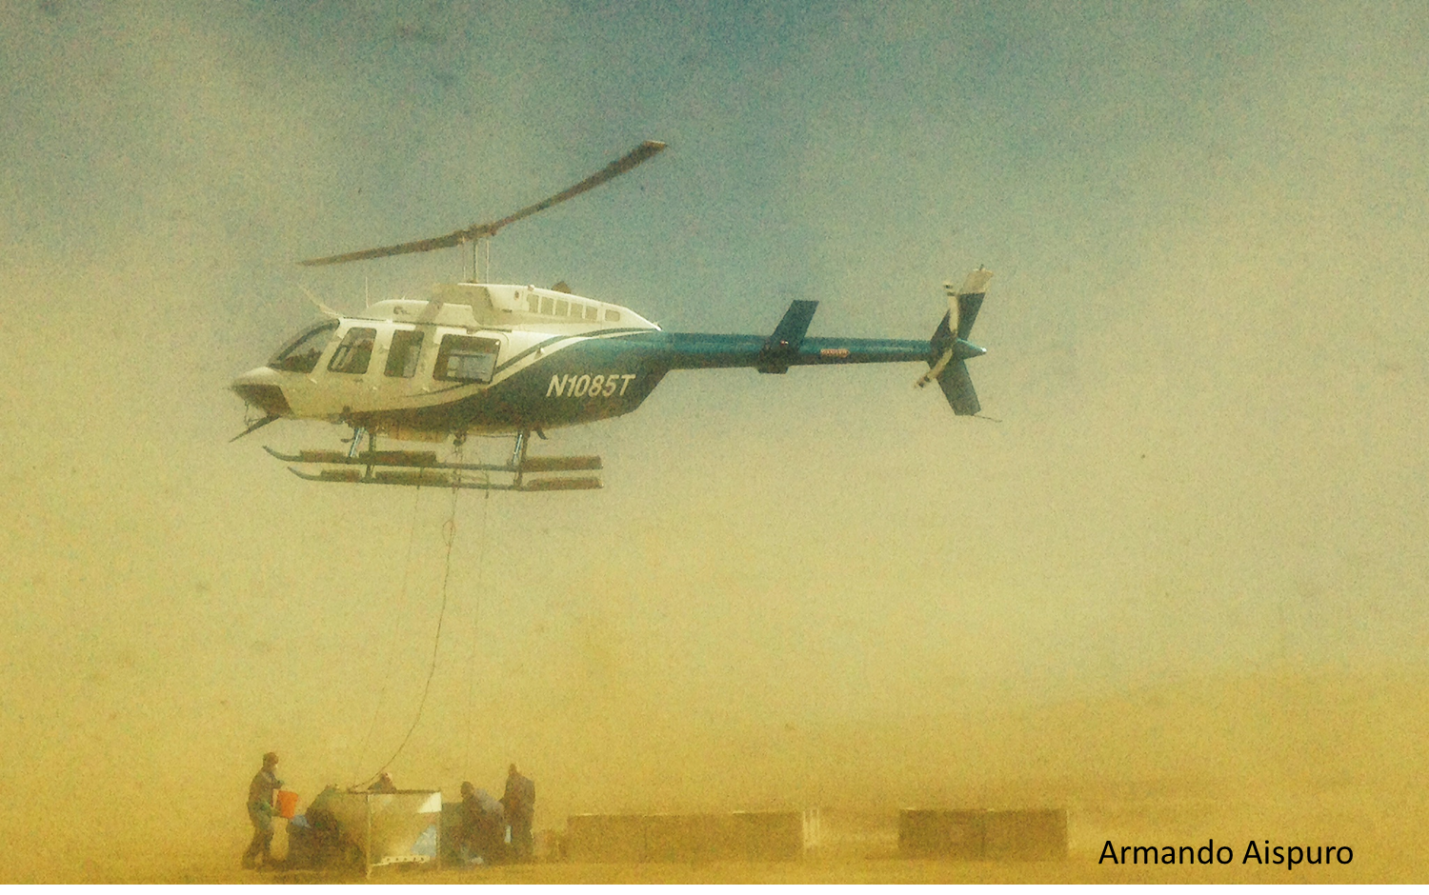 A helicopterand a hopper isused to deploy ant bait over hundred of infested acres on San Clemente and Santa Cruz Islands, California.